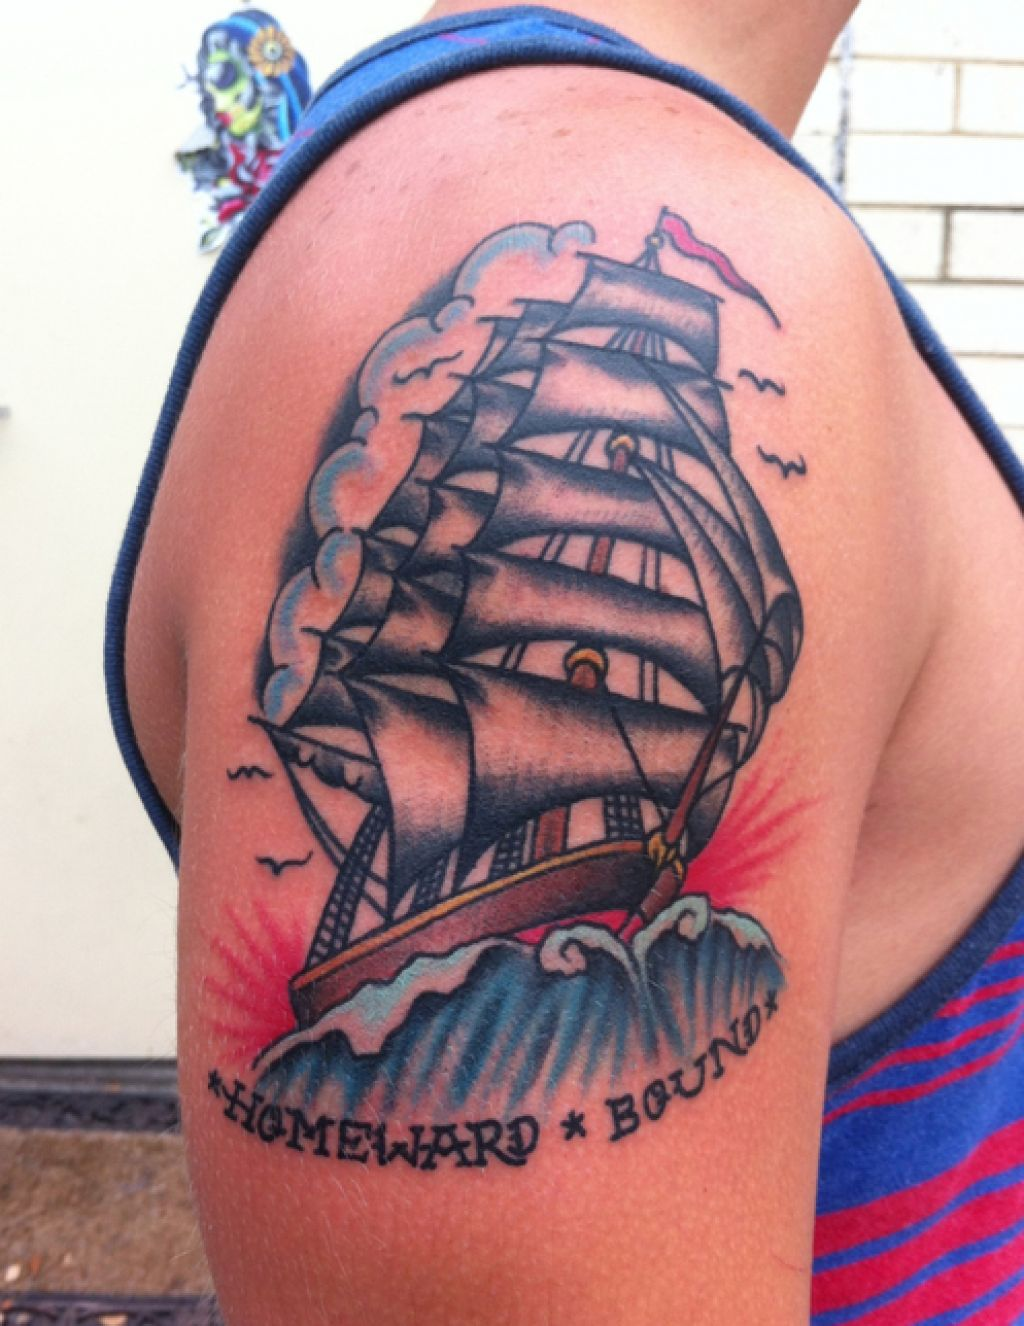 Sailor Jerry Tattoo Shapes Design Homeward Bound Pictures